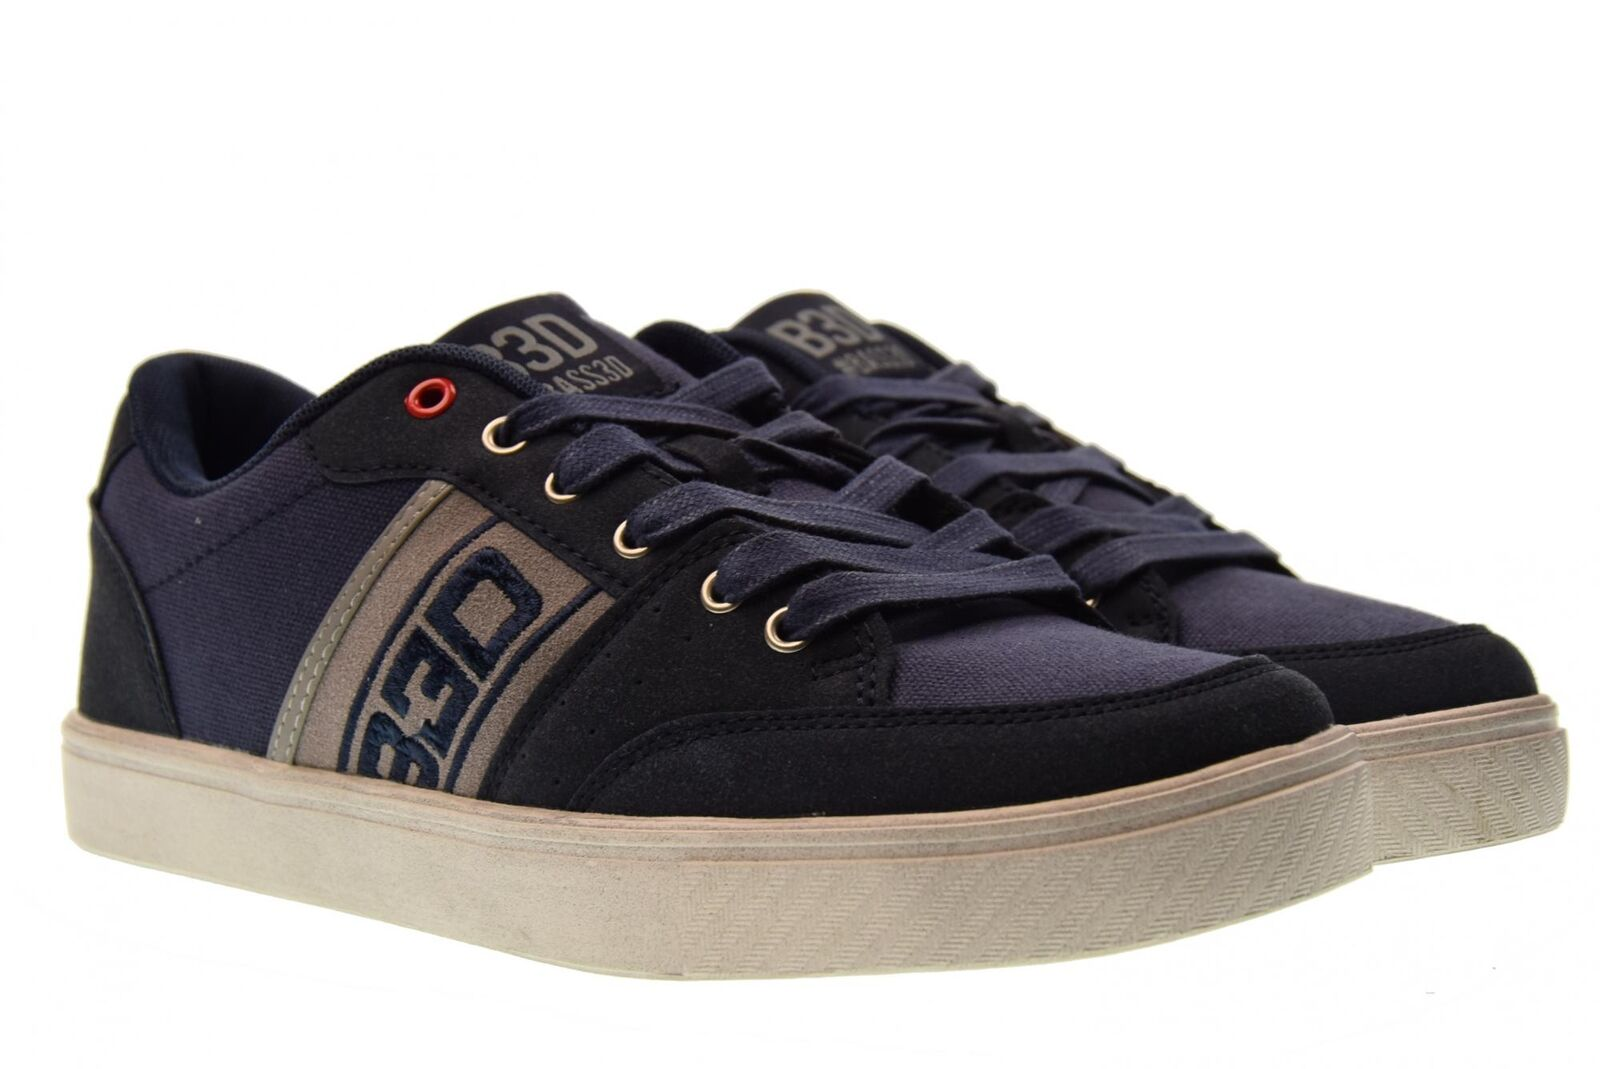 B3D Chaussures P18f chaussures hommes bas Baskets 40182 BLU